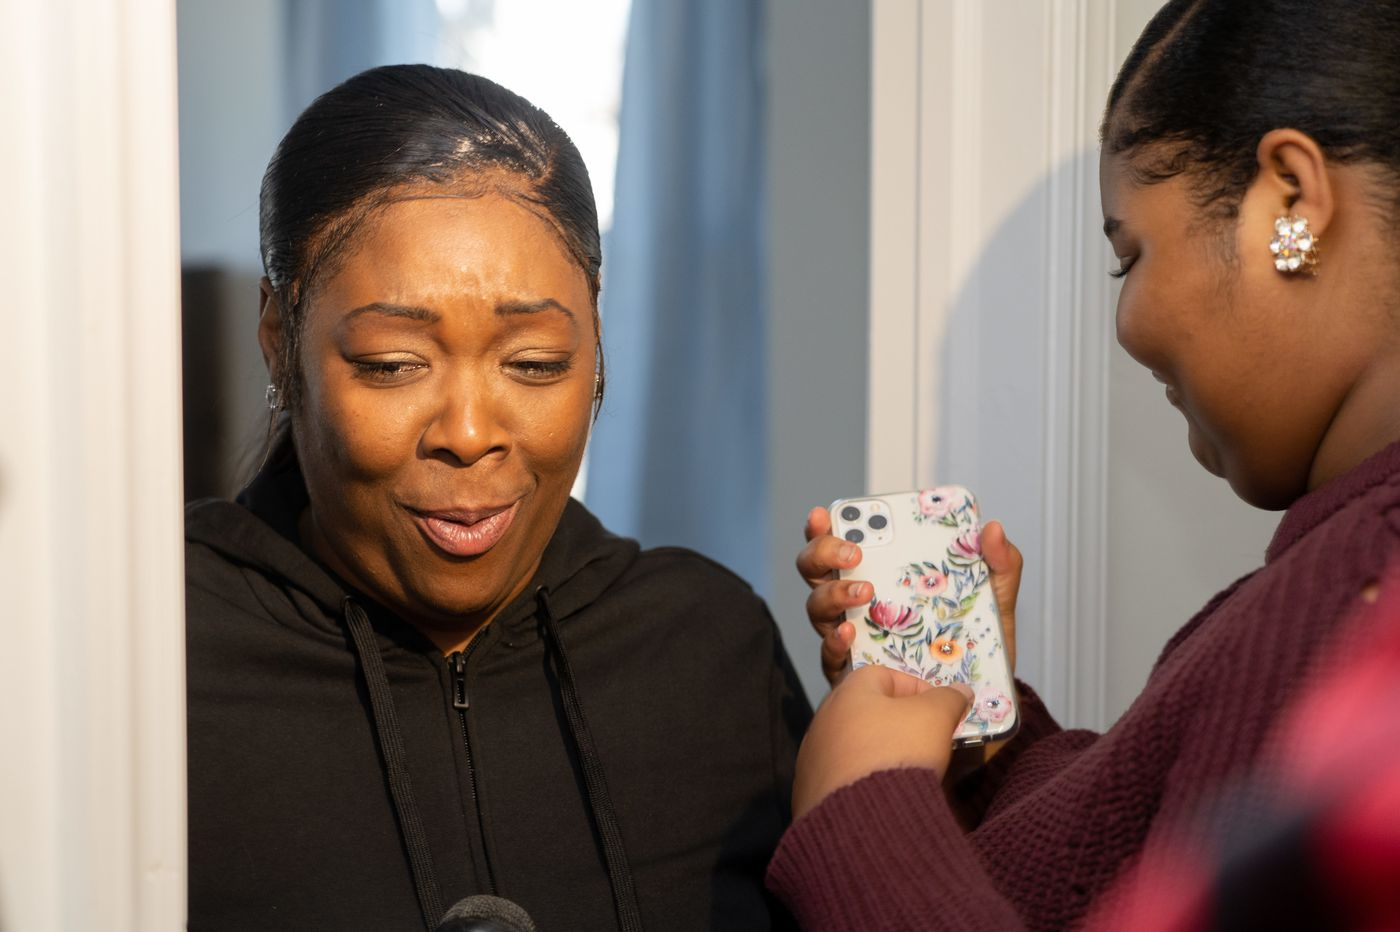 A homeless Camden mom worked all year to buy a house. Then volunteers surprised her by filling it with furnishings.